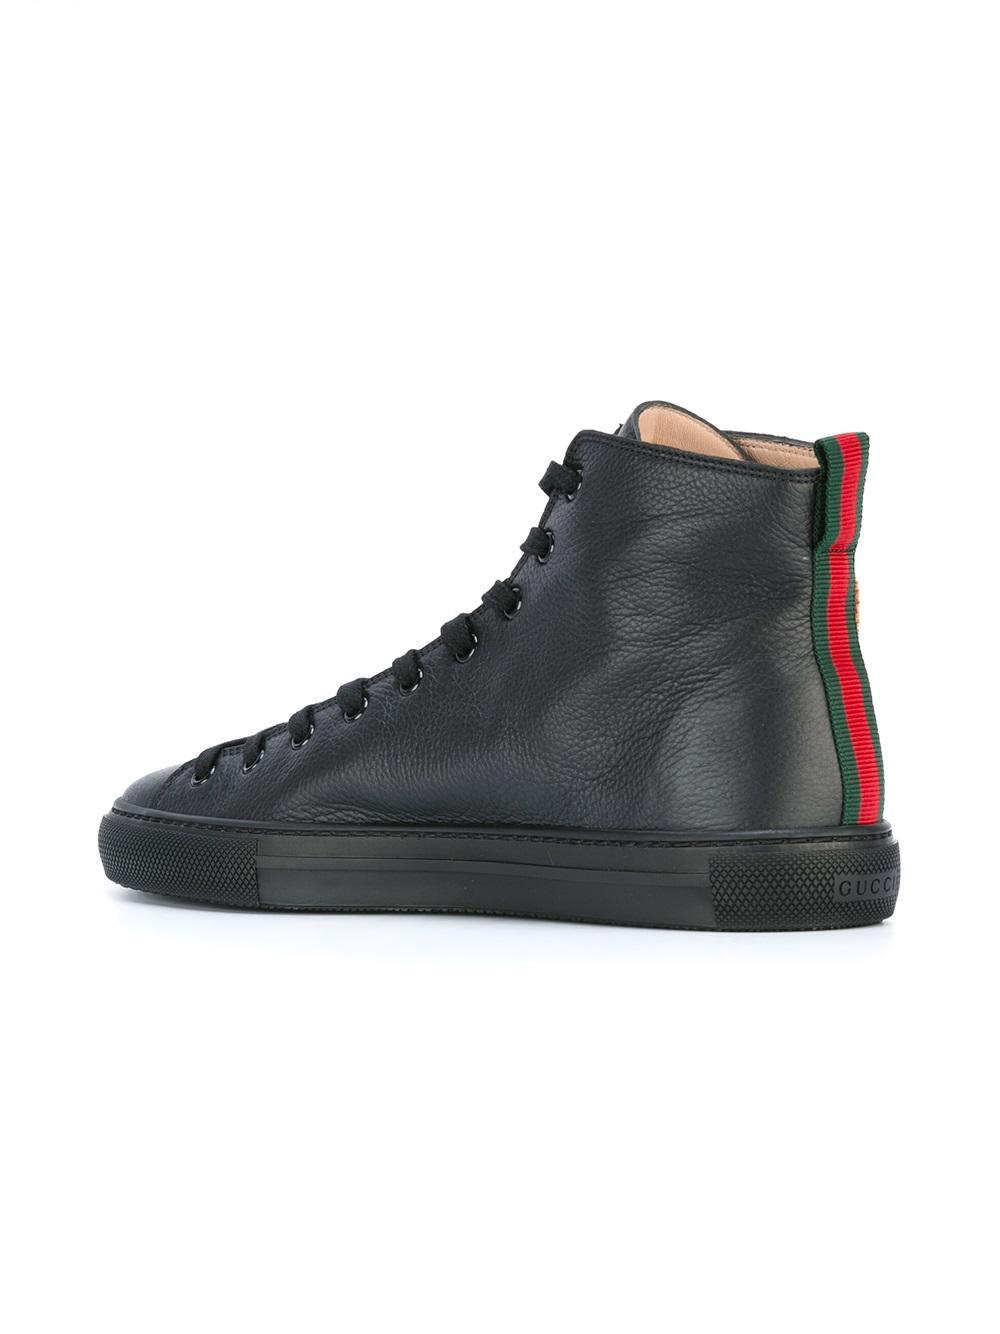 Gucci Leather Tiger Hi Top Sneakers In Black For Men Lyst